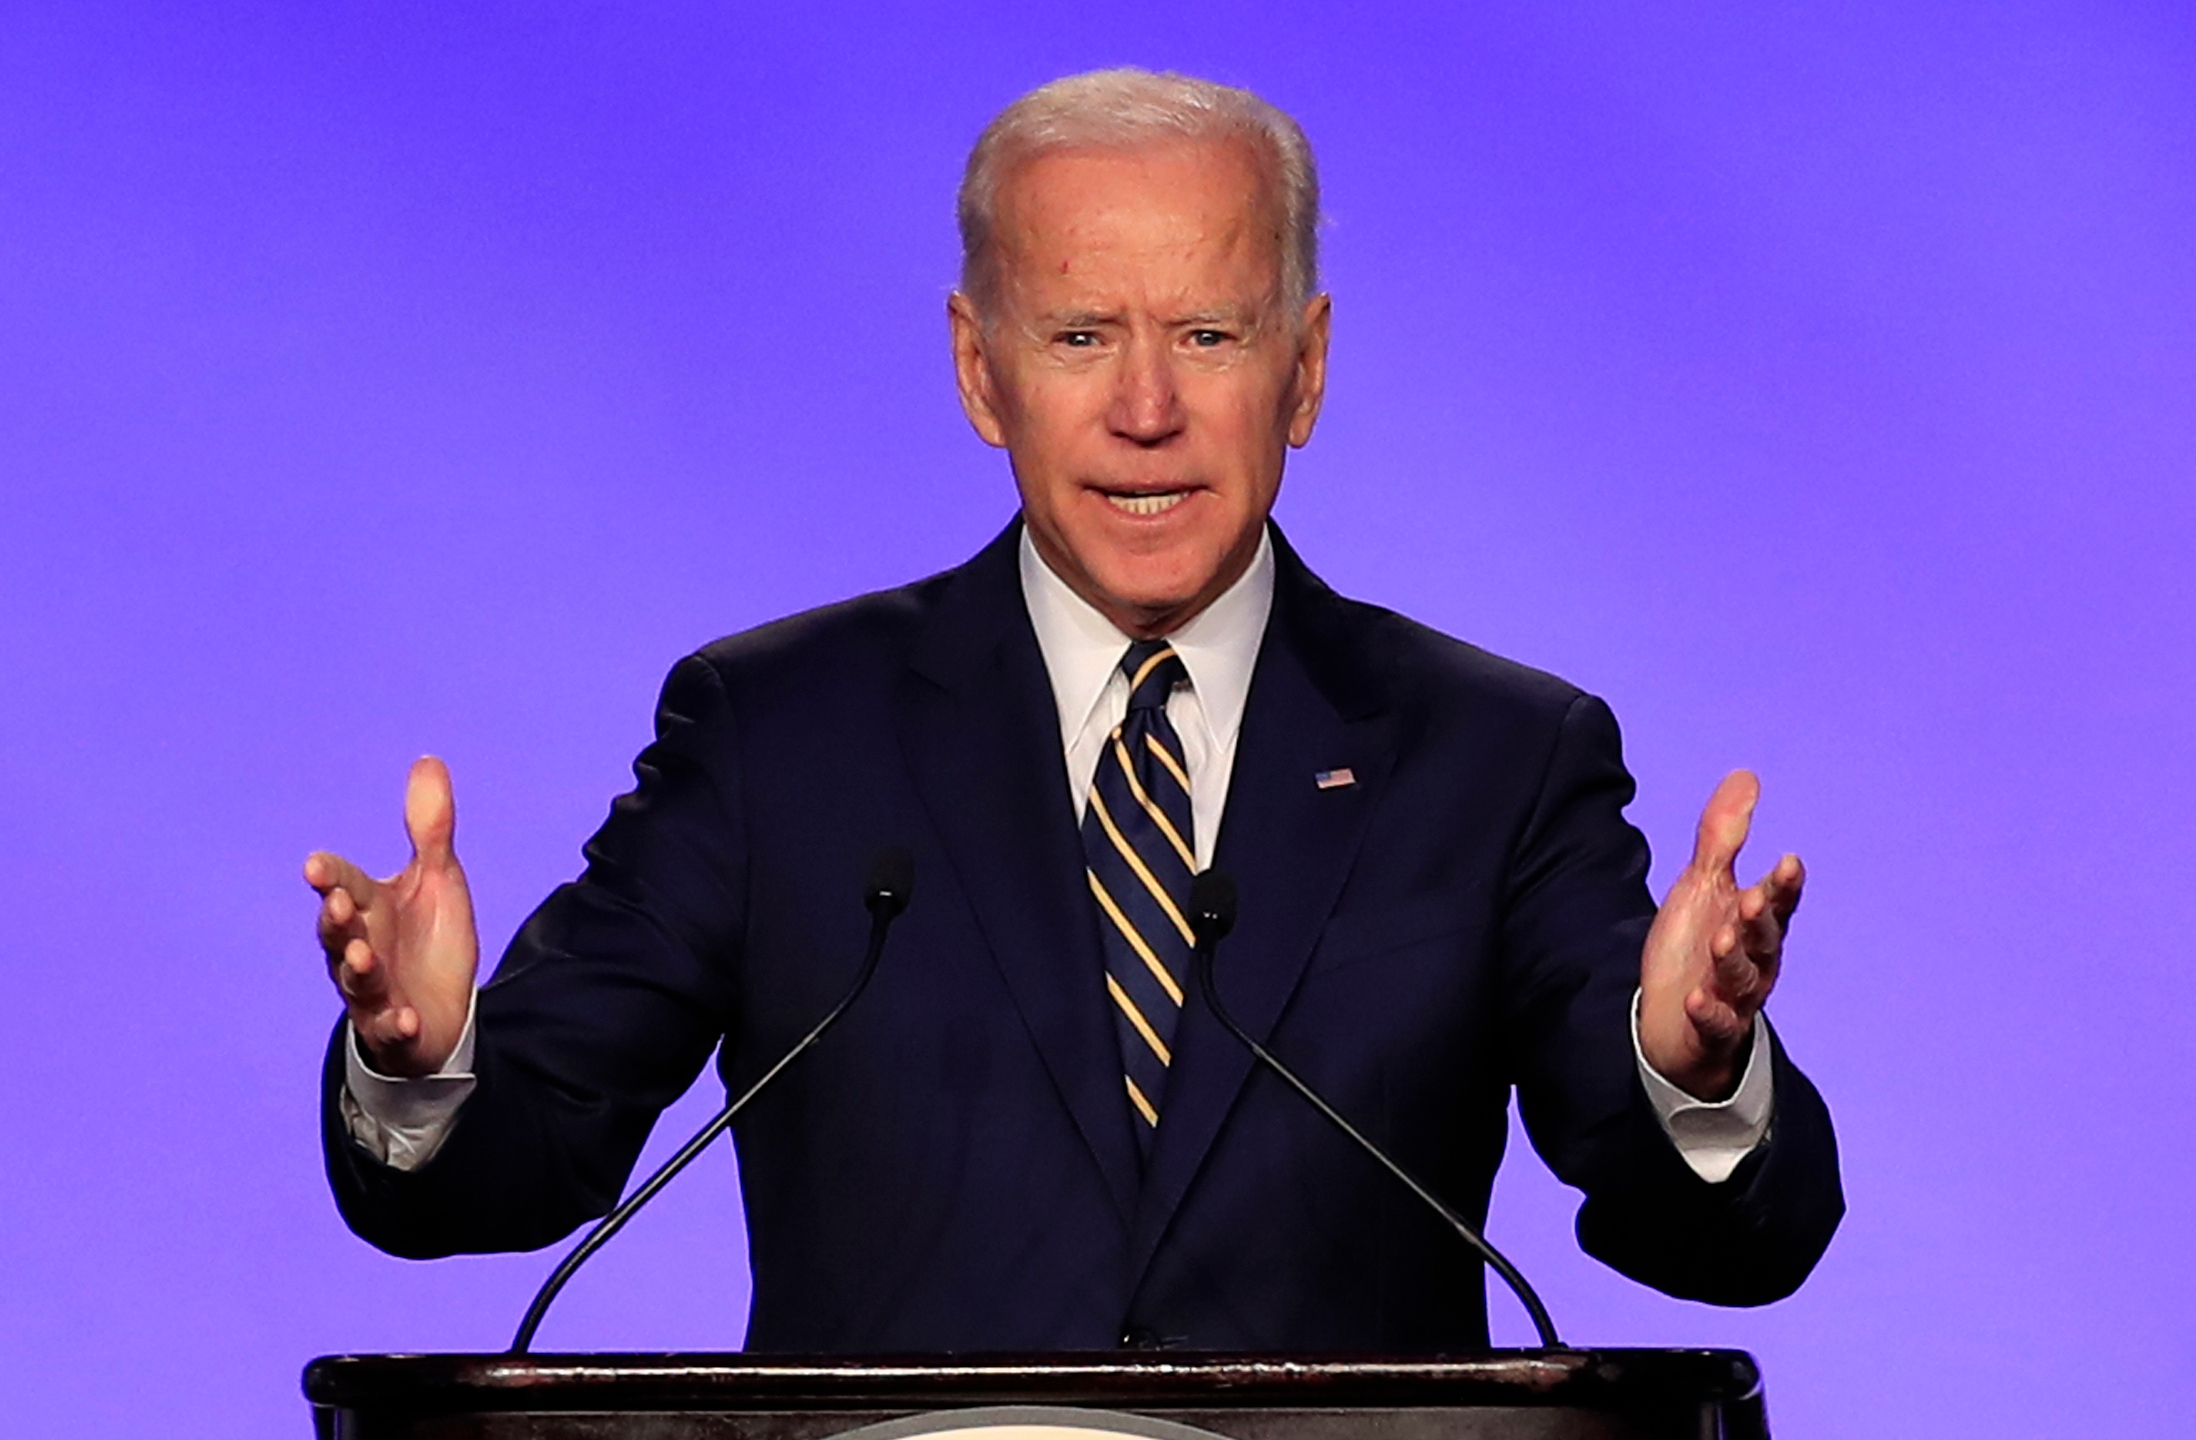 Election 2020 Joe Biden_1556040315282